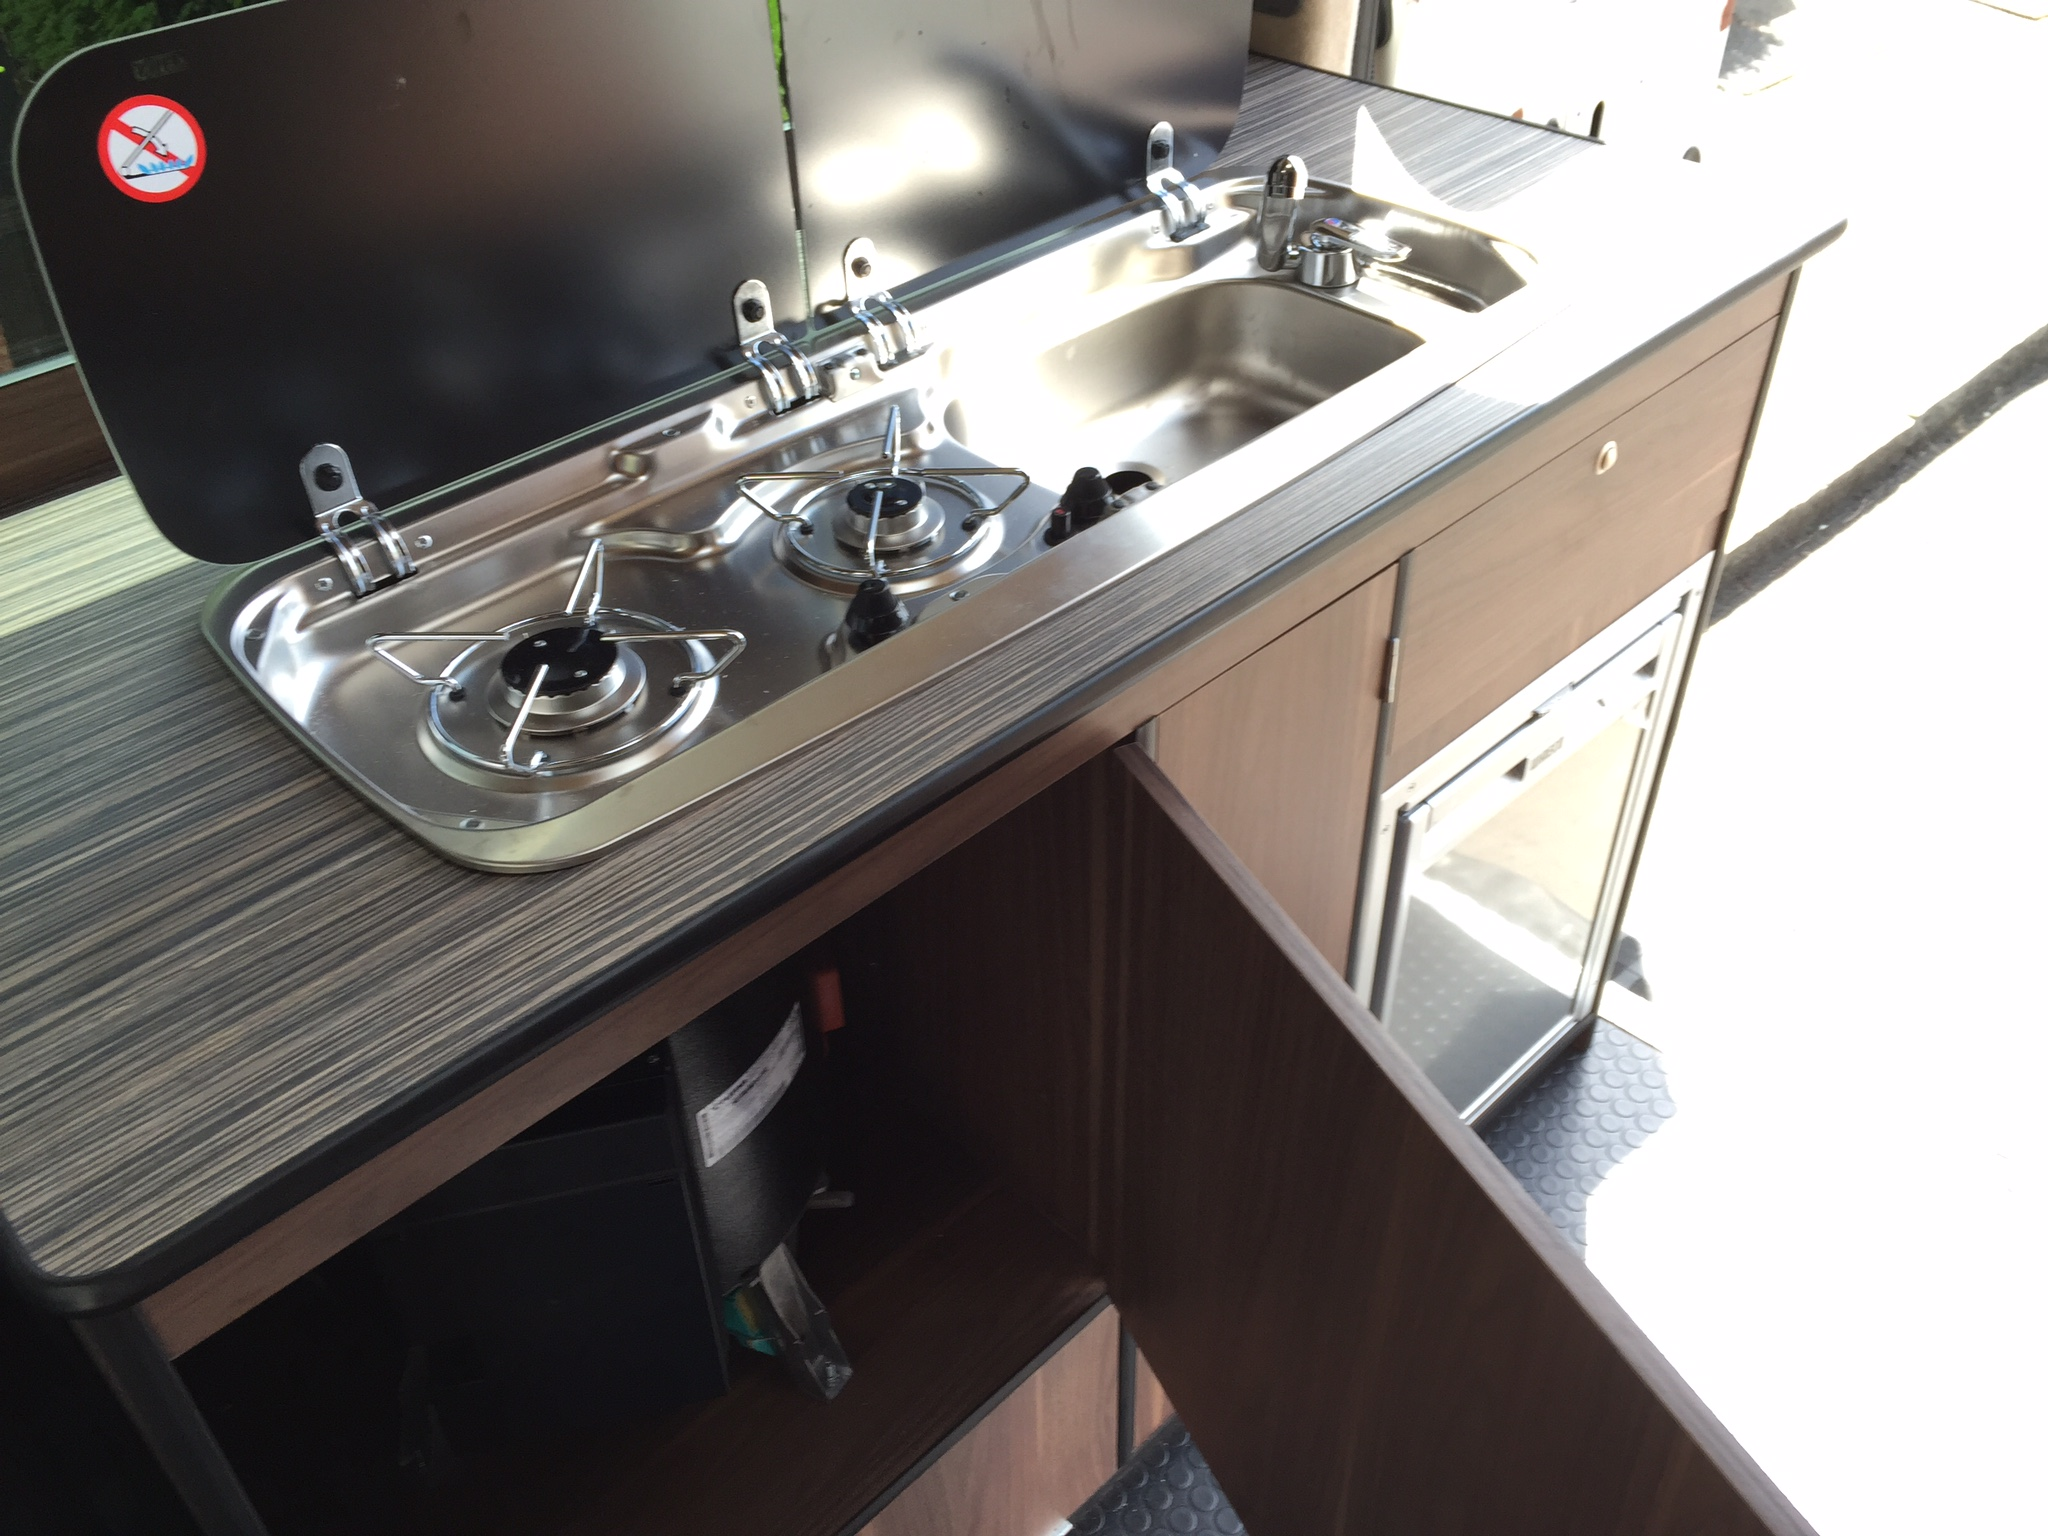 Hob/sink and boiler